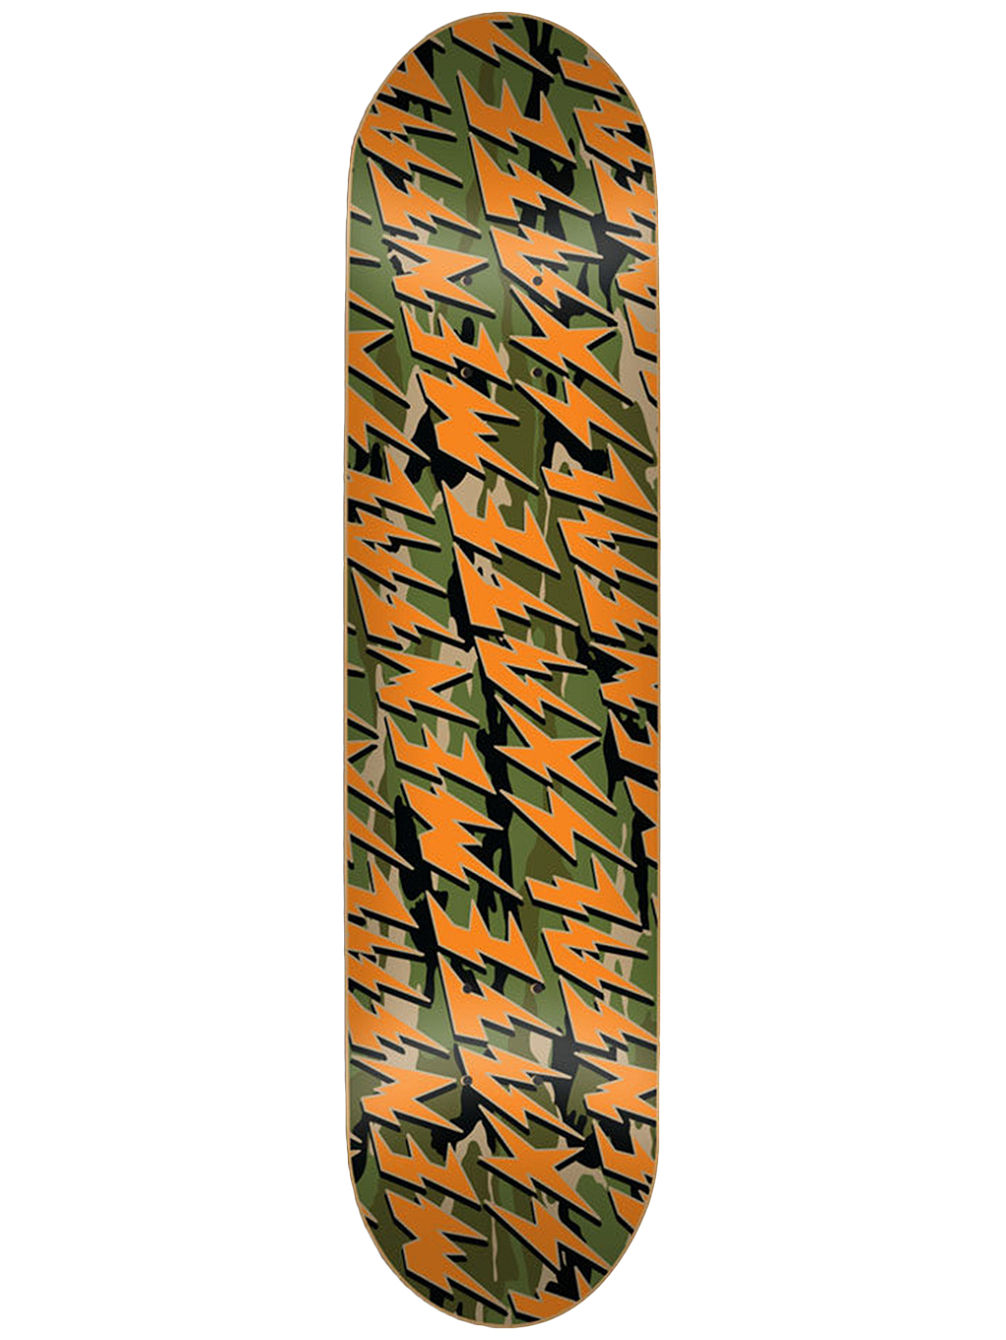 "Bolts Camo 8.375"" Skate Deck"